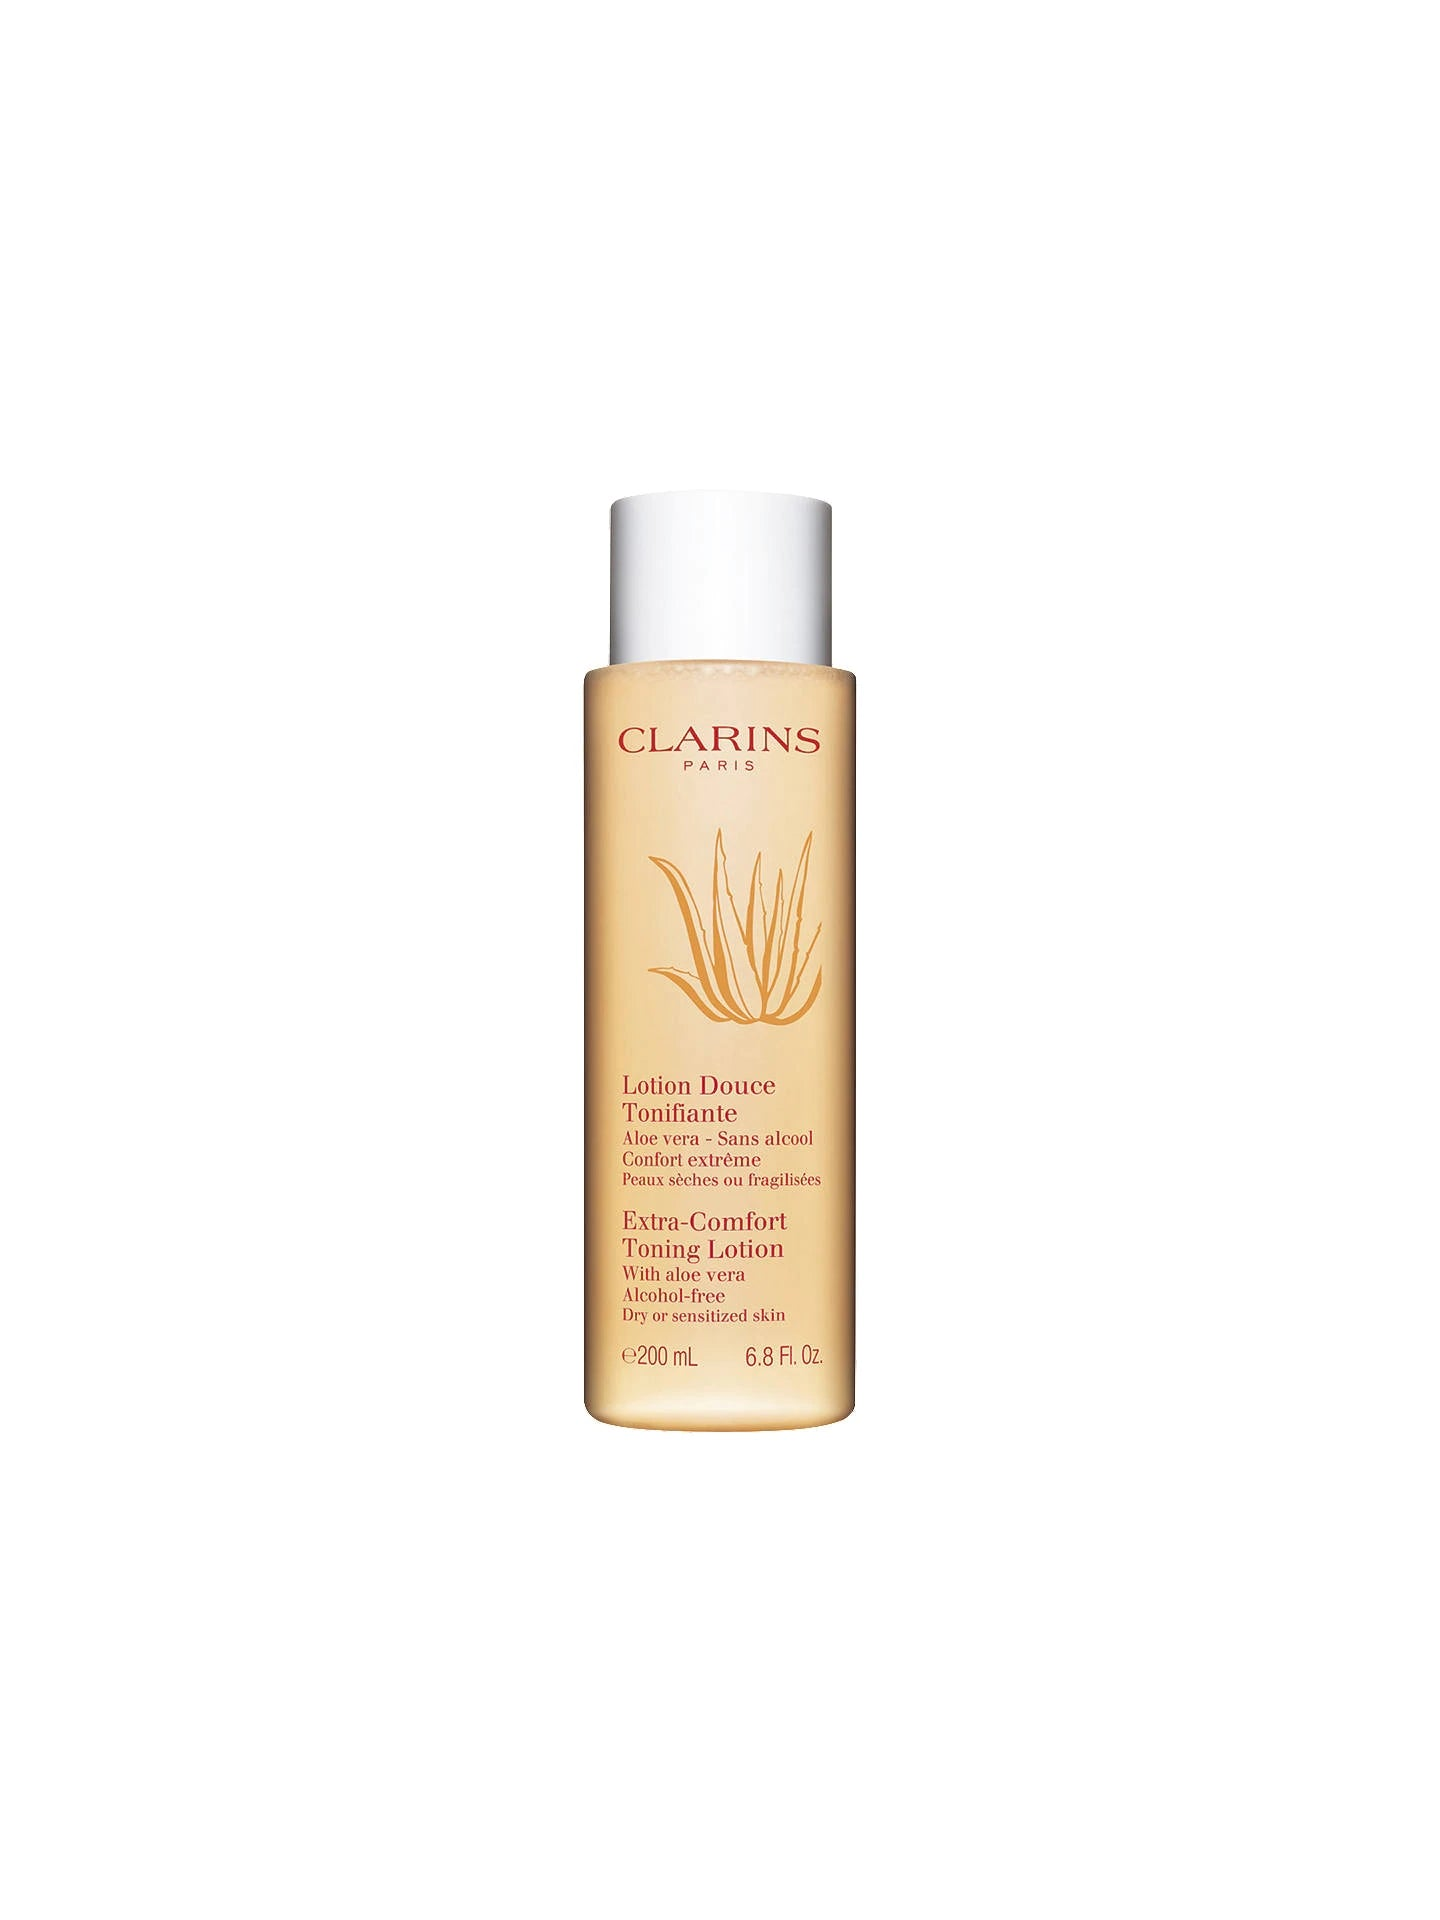 Clarins Extra-Comfort Toning Lotion - For Dry/Sensitive Skin, 200ml